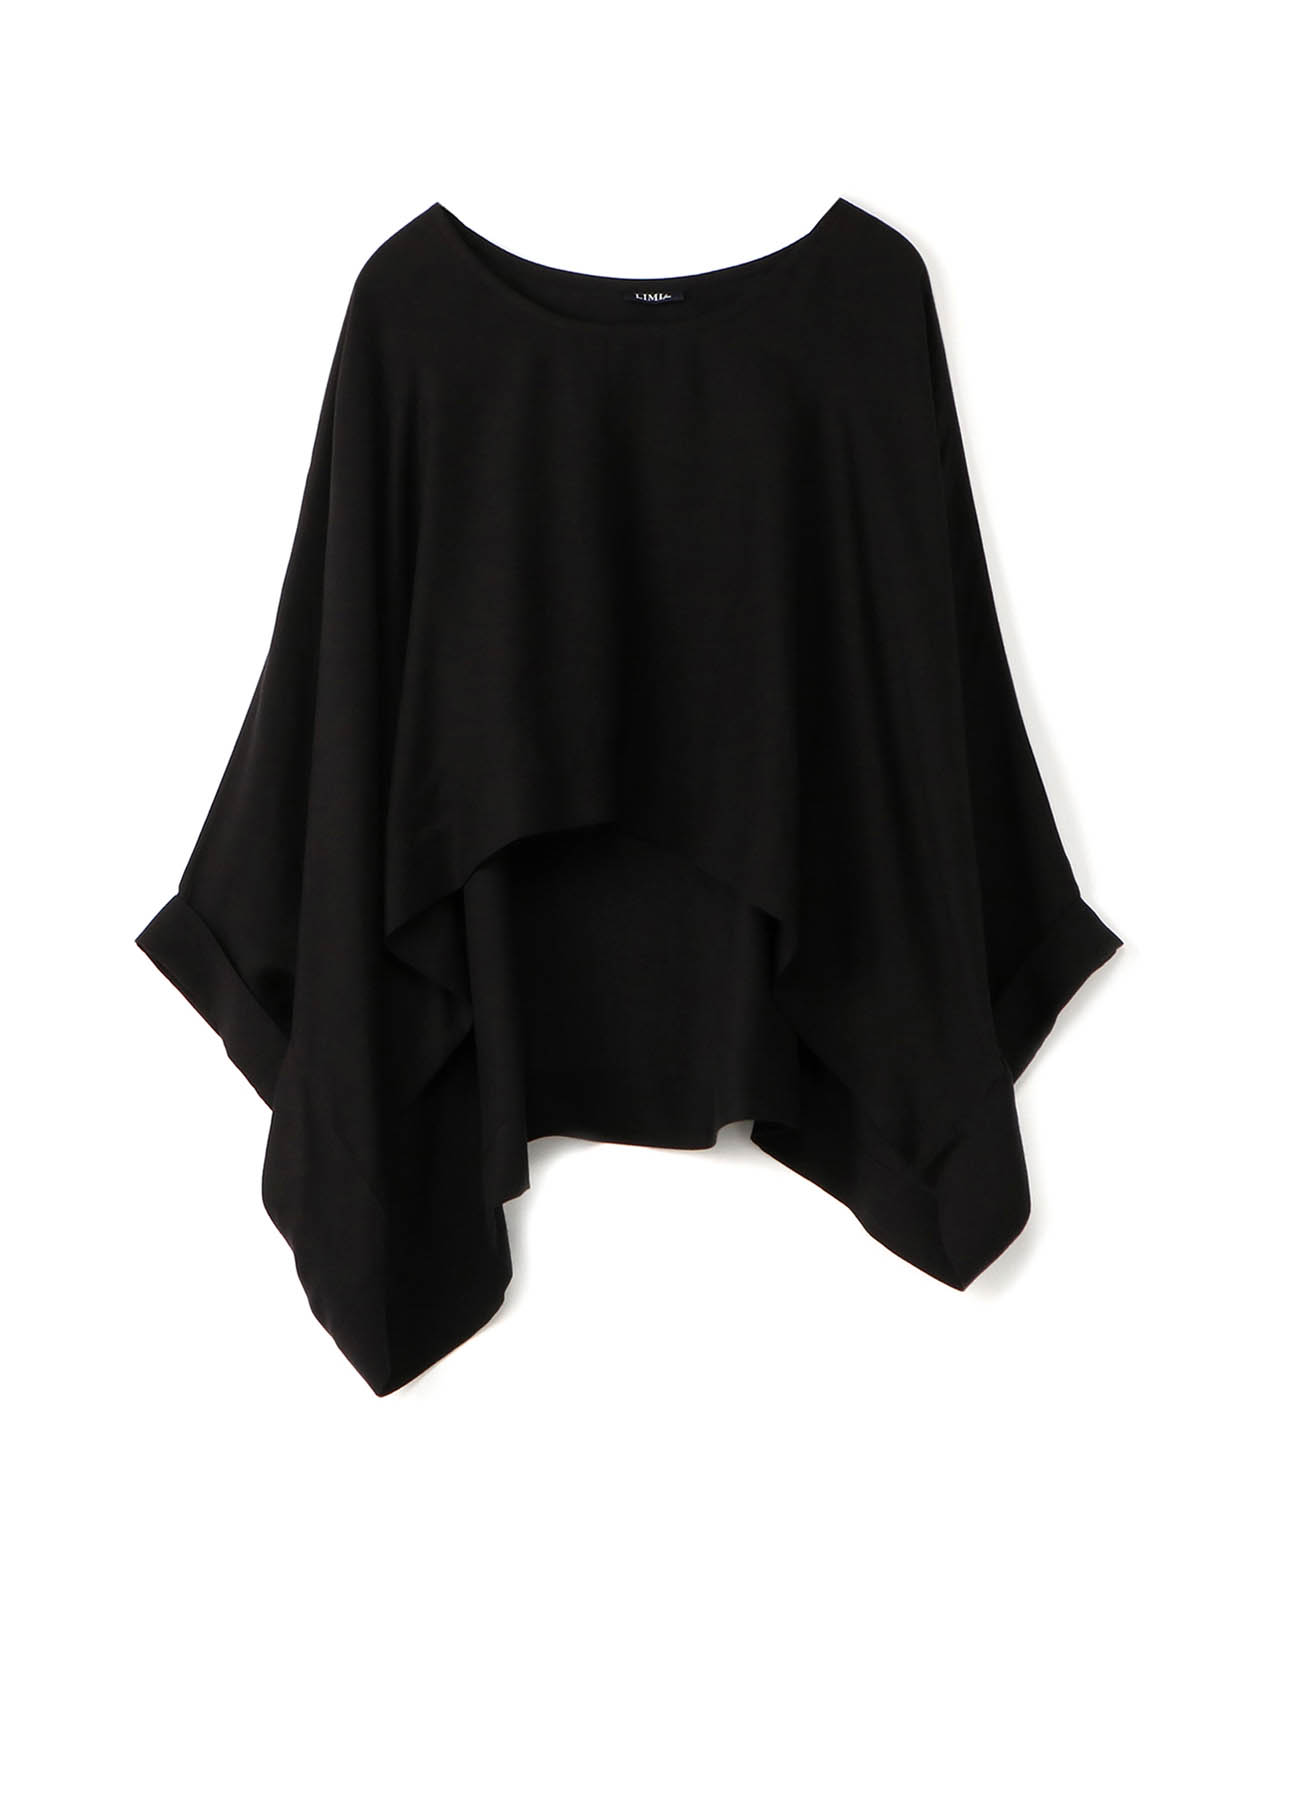 Ten/Viyella Square Dolman Blouse